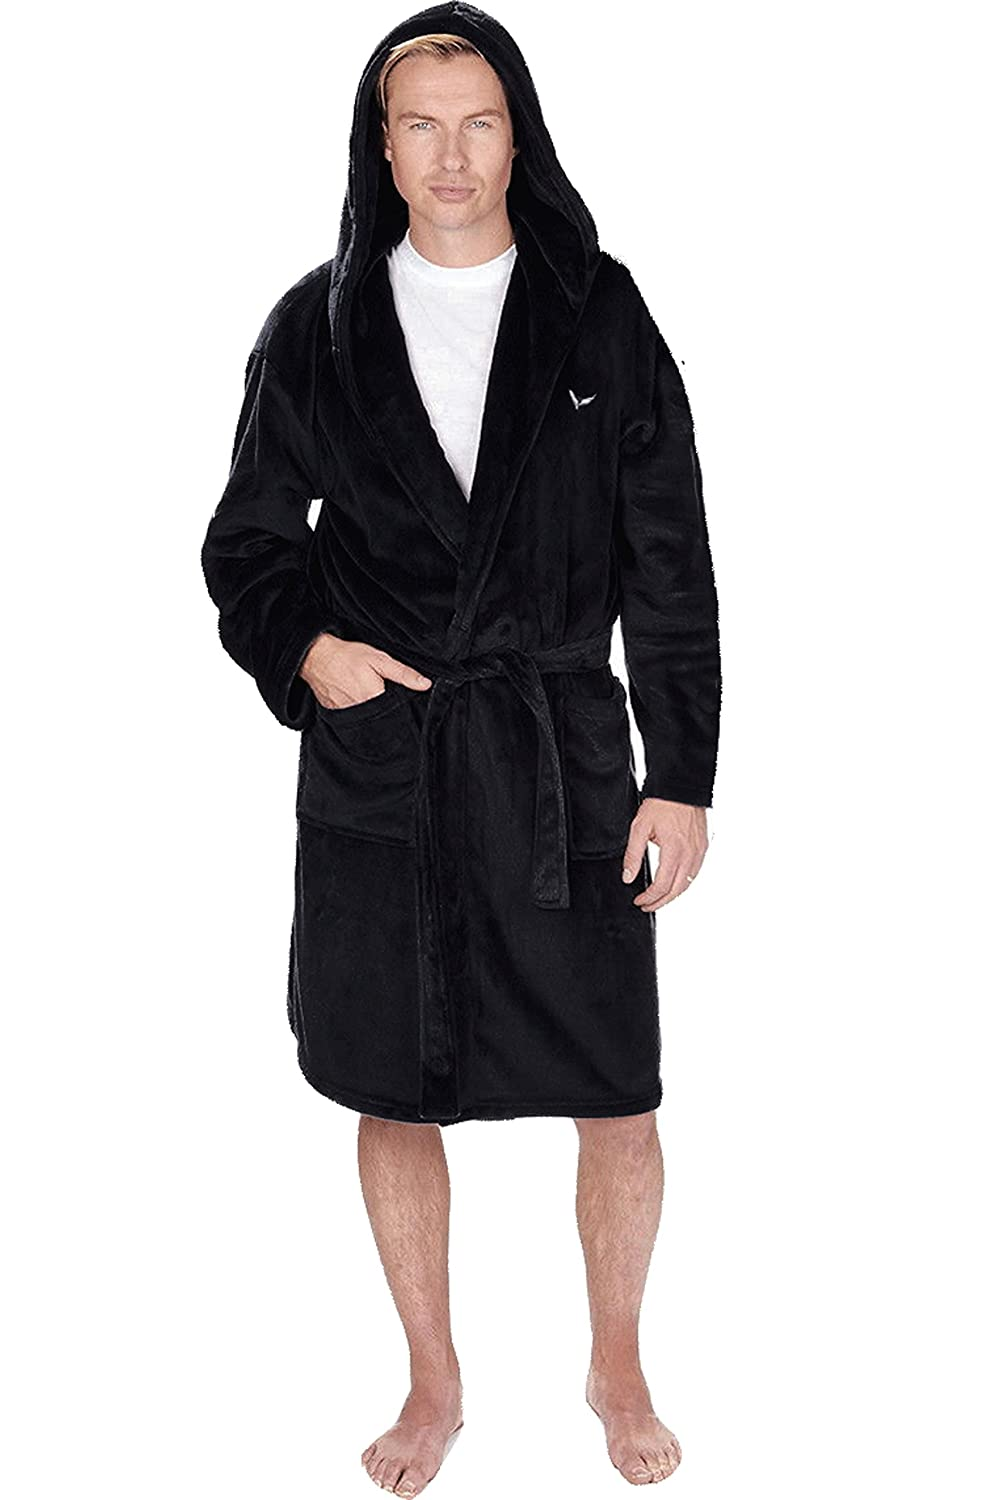 INSIGNIA Mens Luxury Flannel Fleece Hooded Dressing Gown Robes Wrap Loungewear HT043